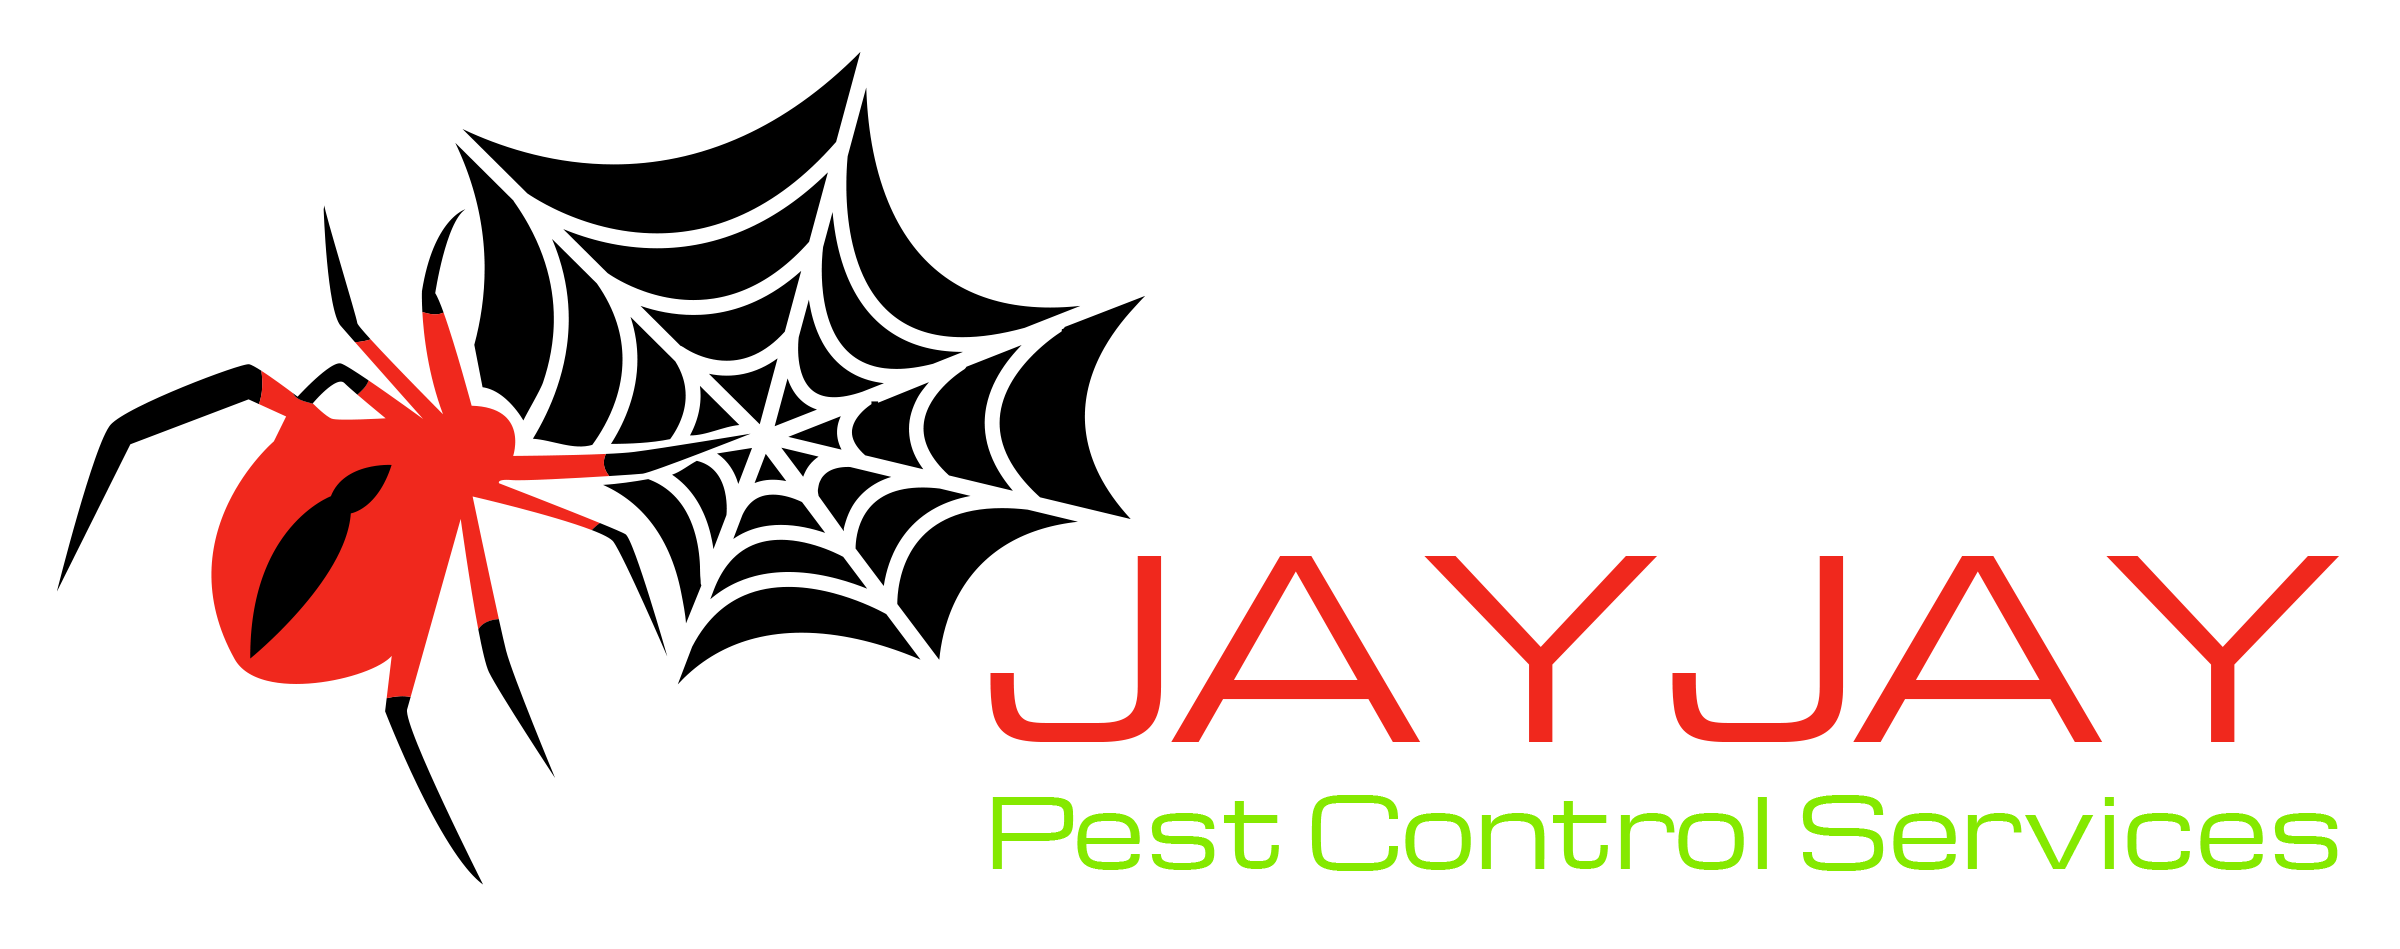 Jay Jay Pest Control Services